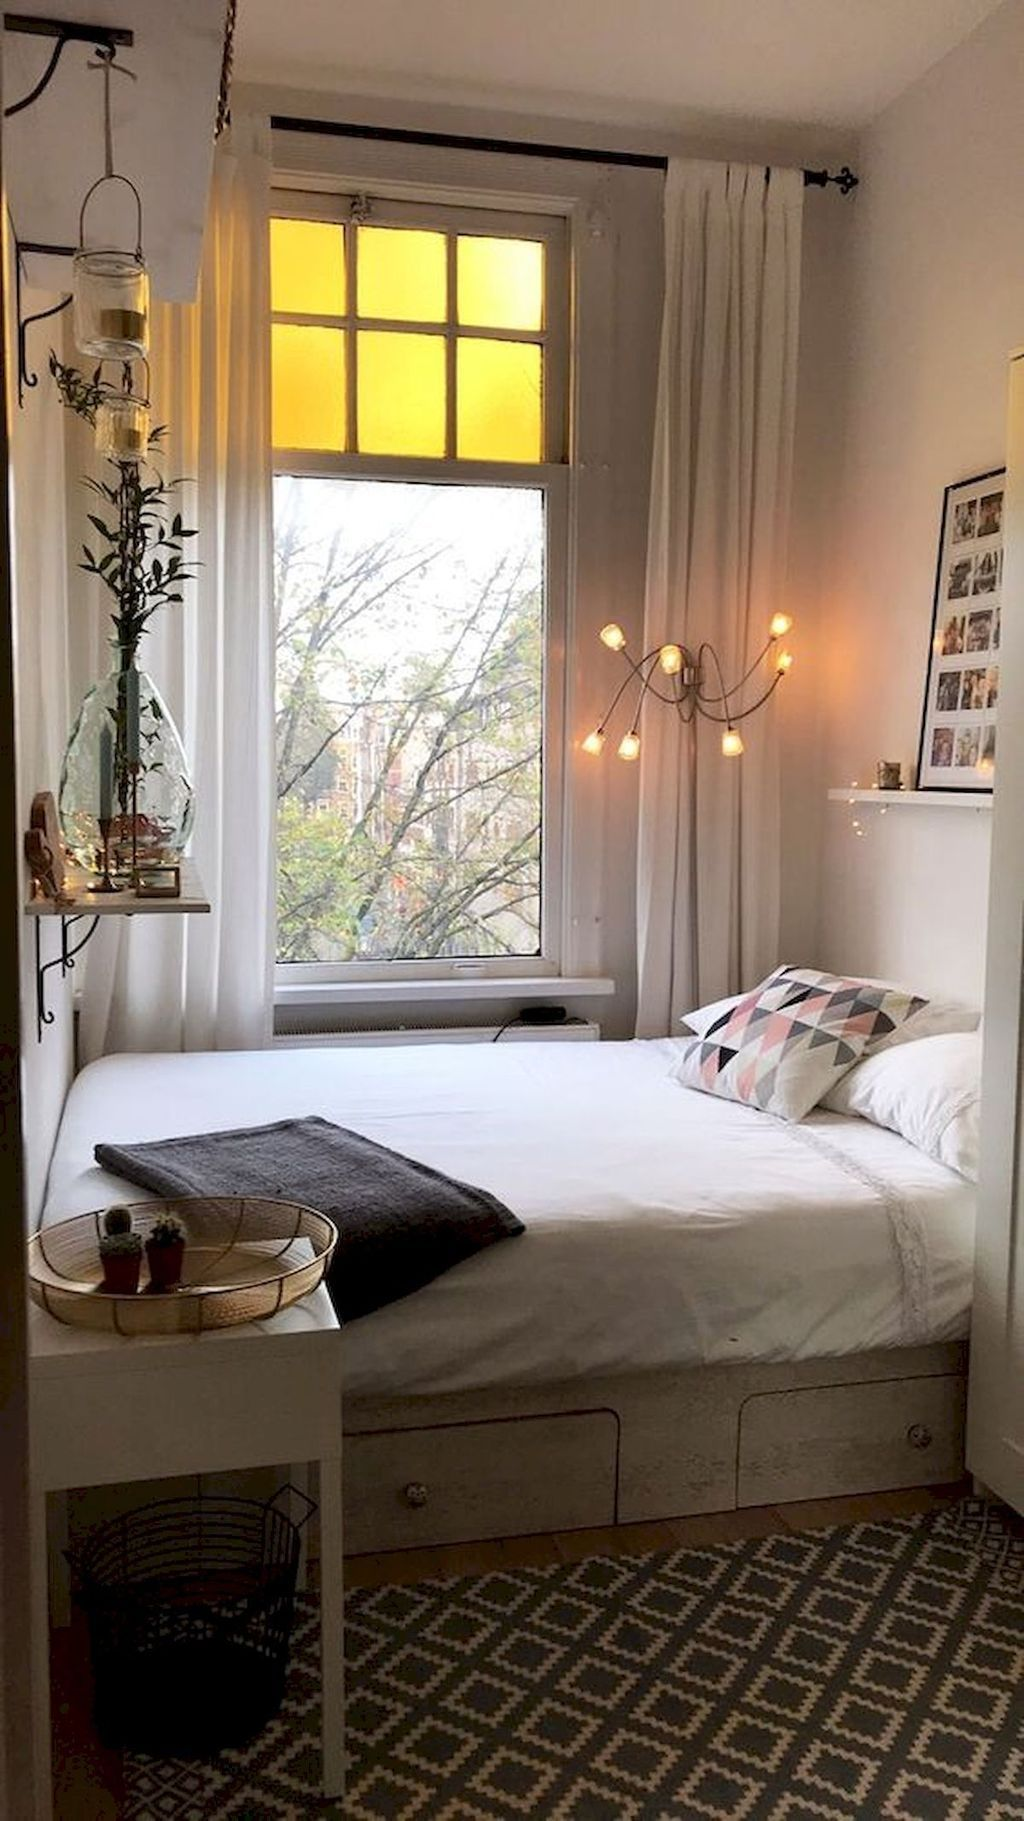 49 Cool Small Bedroom Ideas That Perfect For Small Home Tiny Bedroom Apartment Bedroom Design Small Bedroom